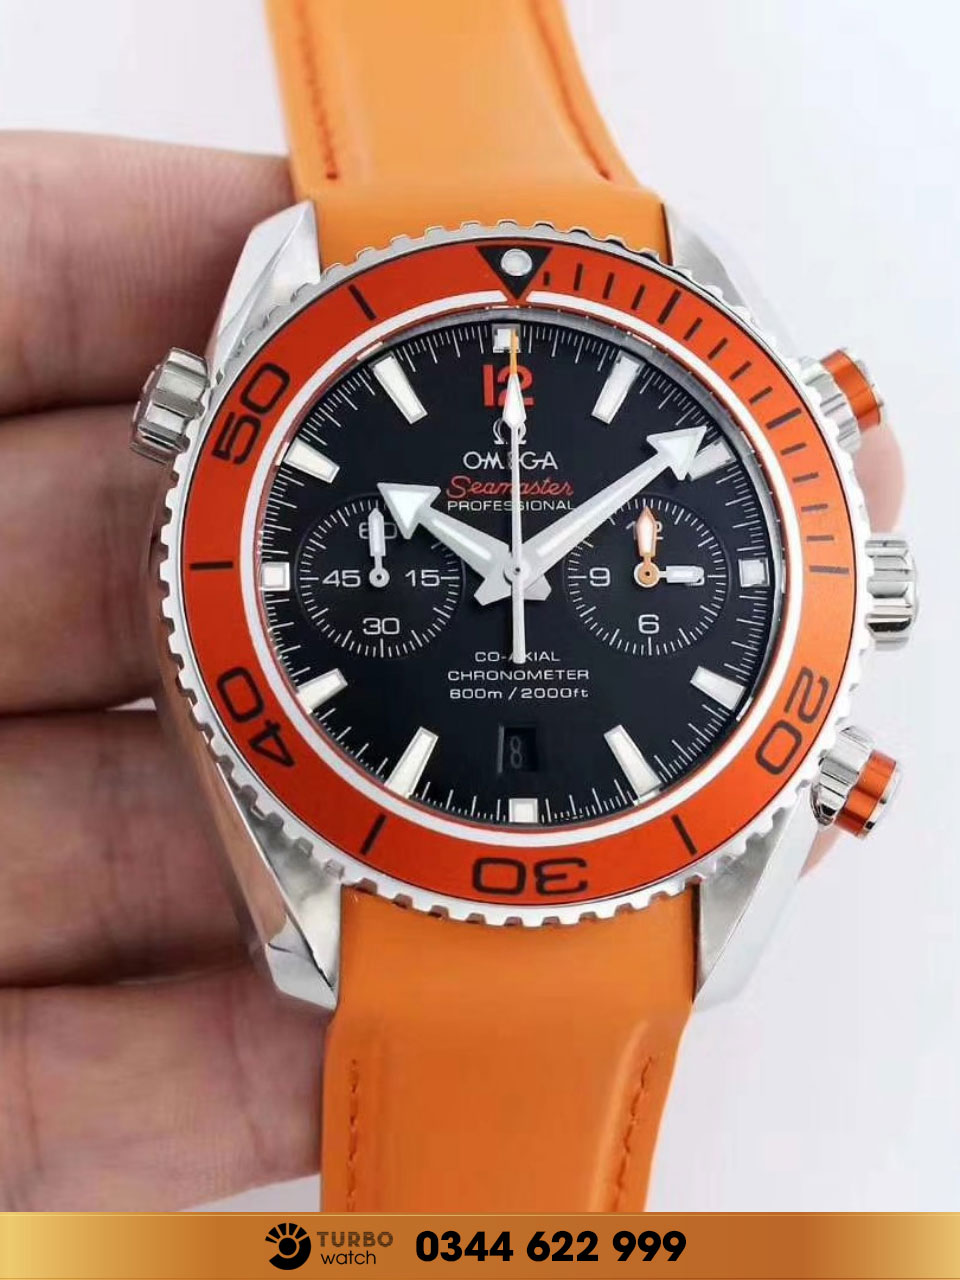 Omega seamaster professional co-axial chronometer 800m 2000ft fake 1-1 siêu cấp